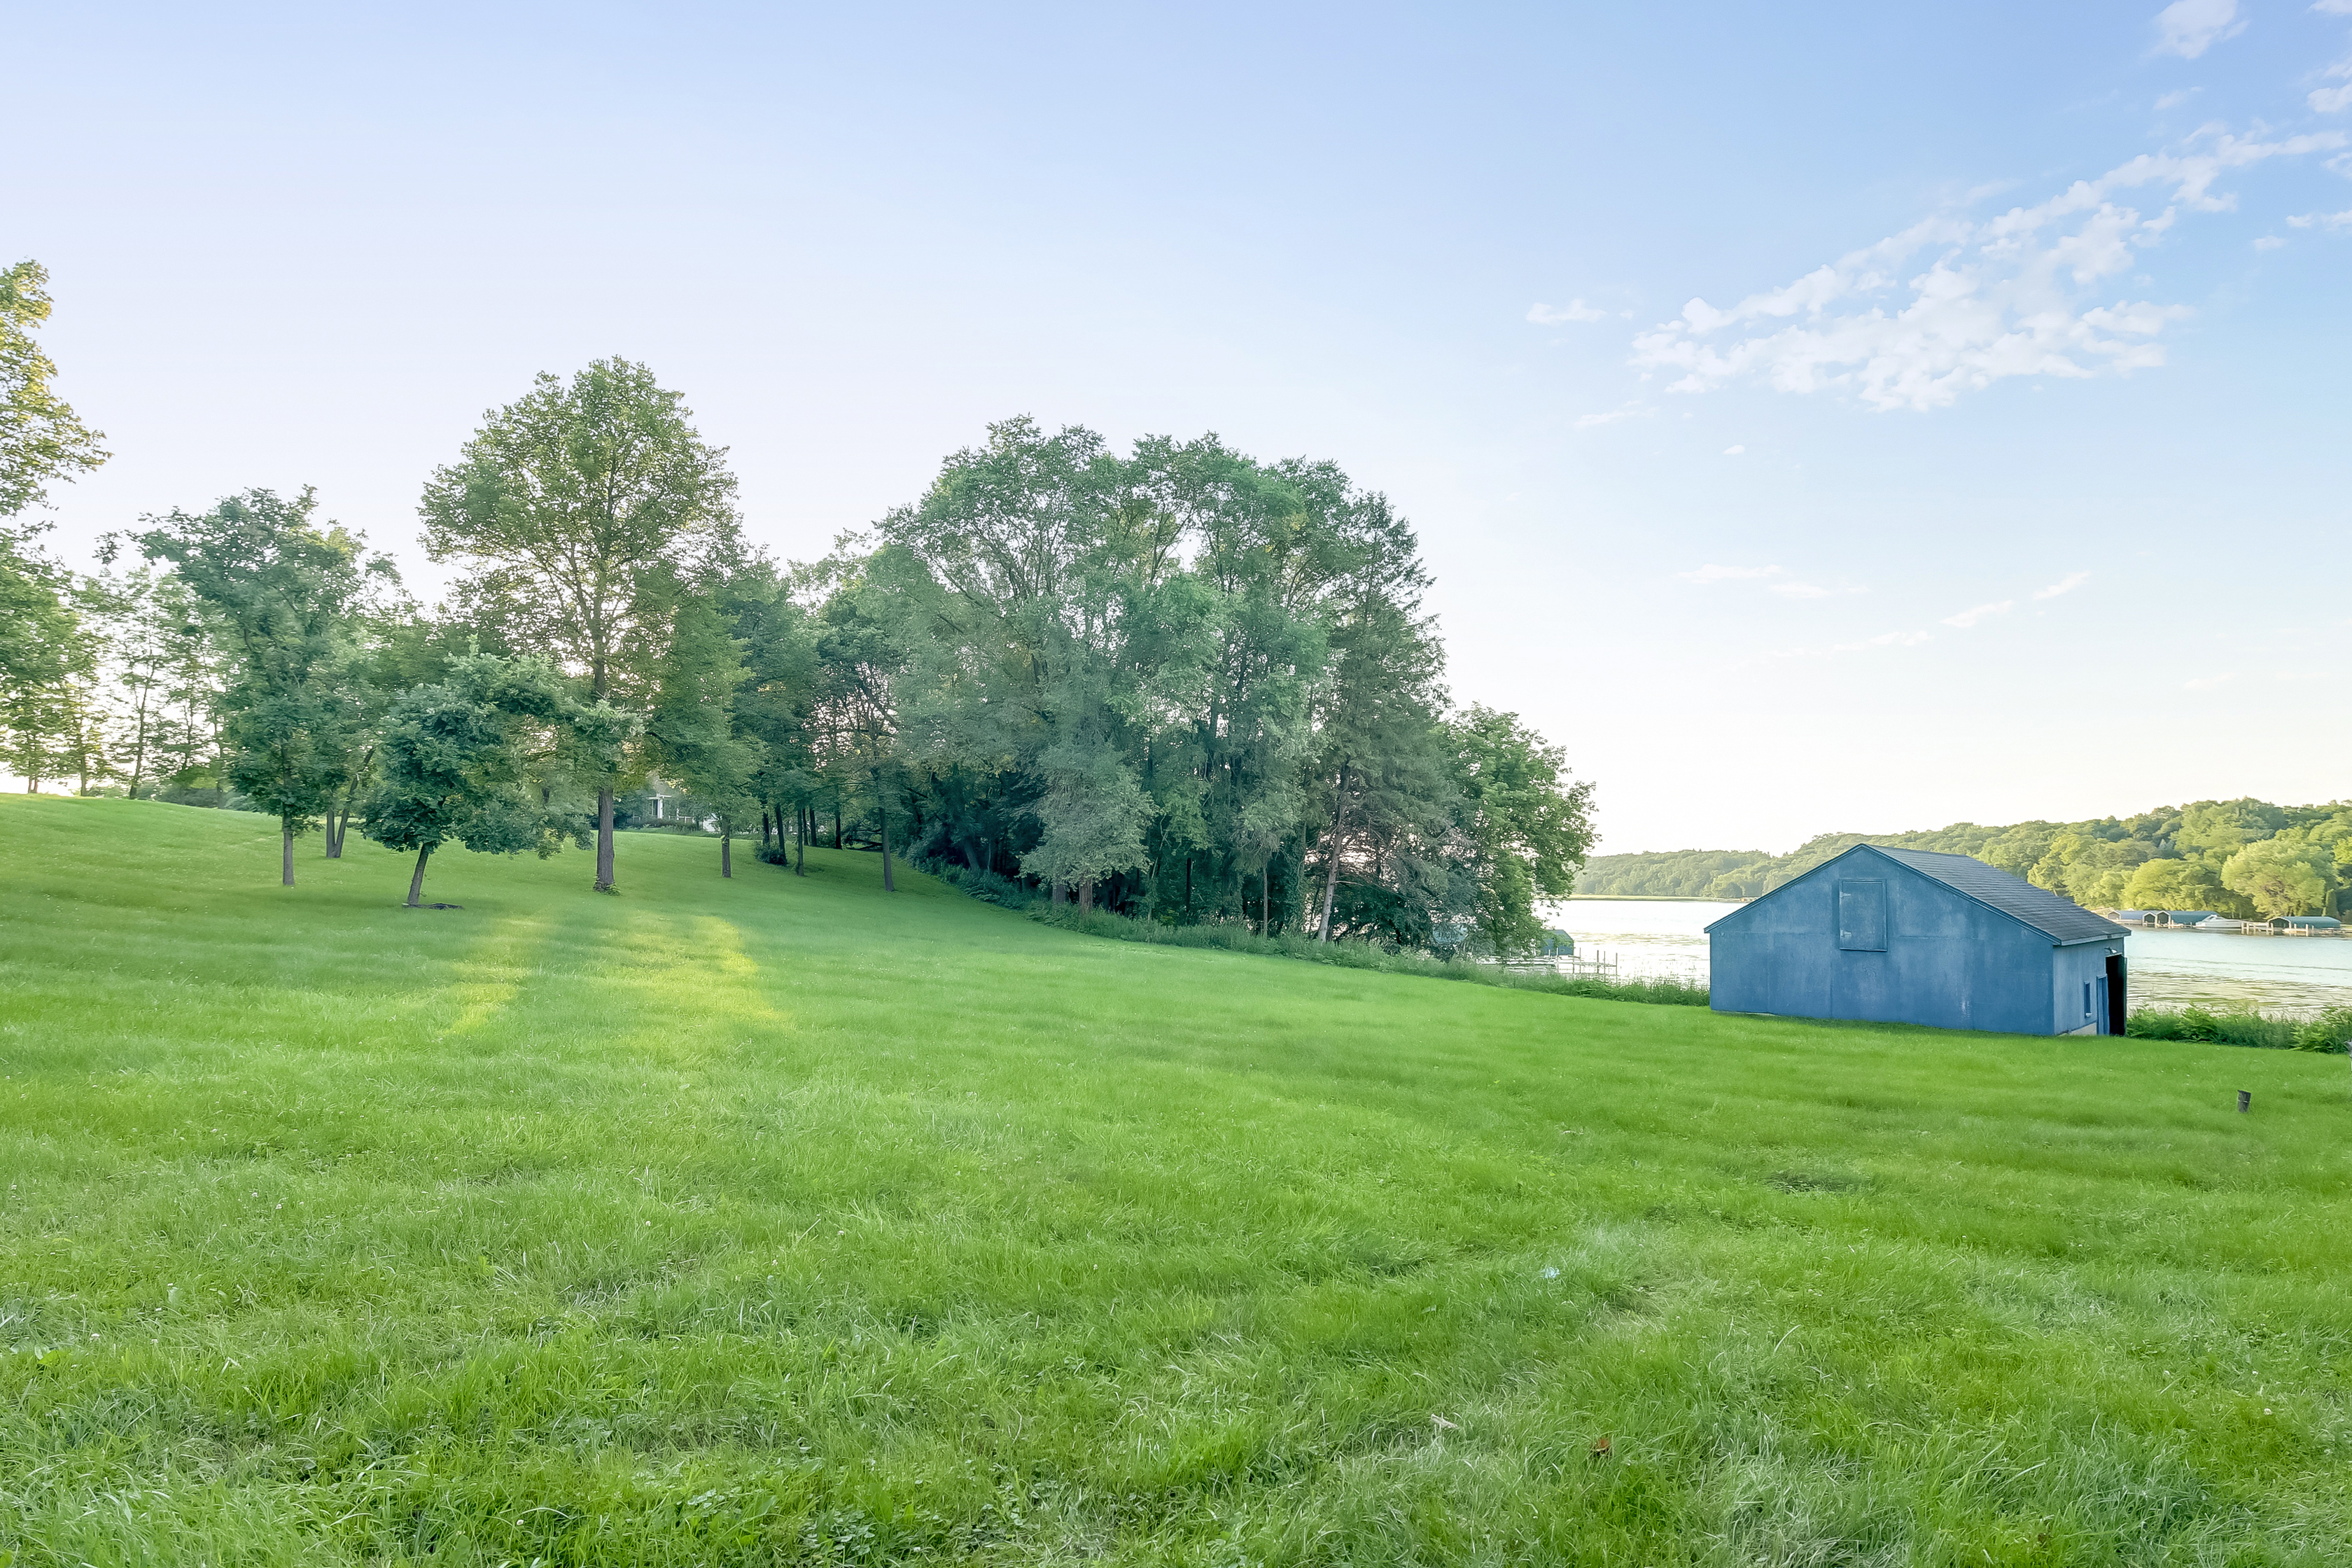 Land for sale Orono, Minnesota 796 North Arm Drive